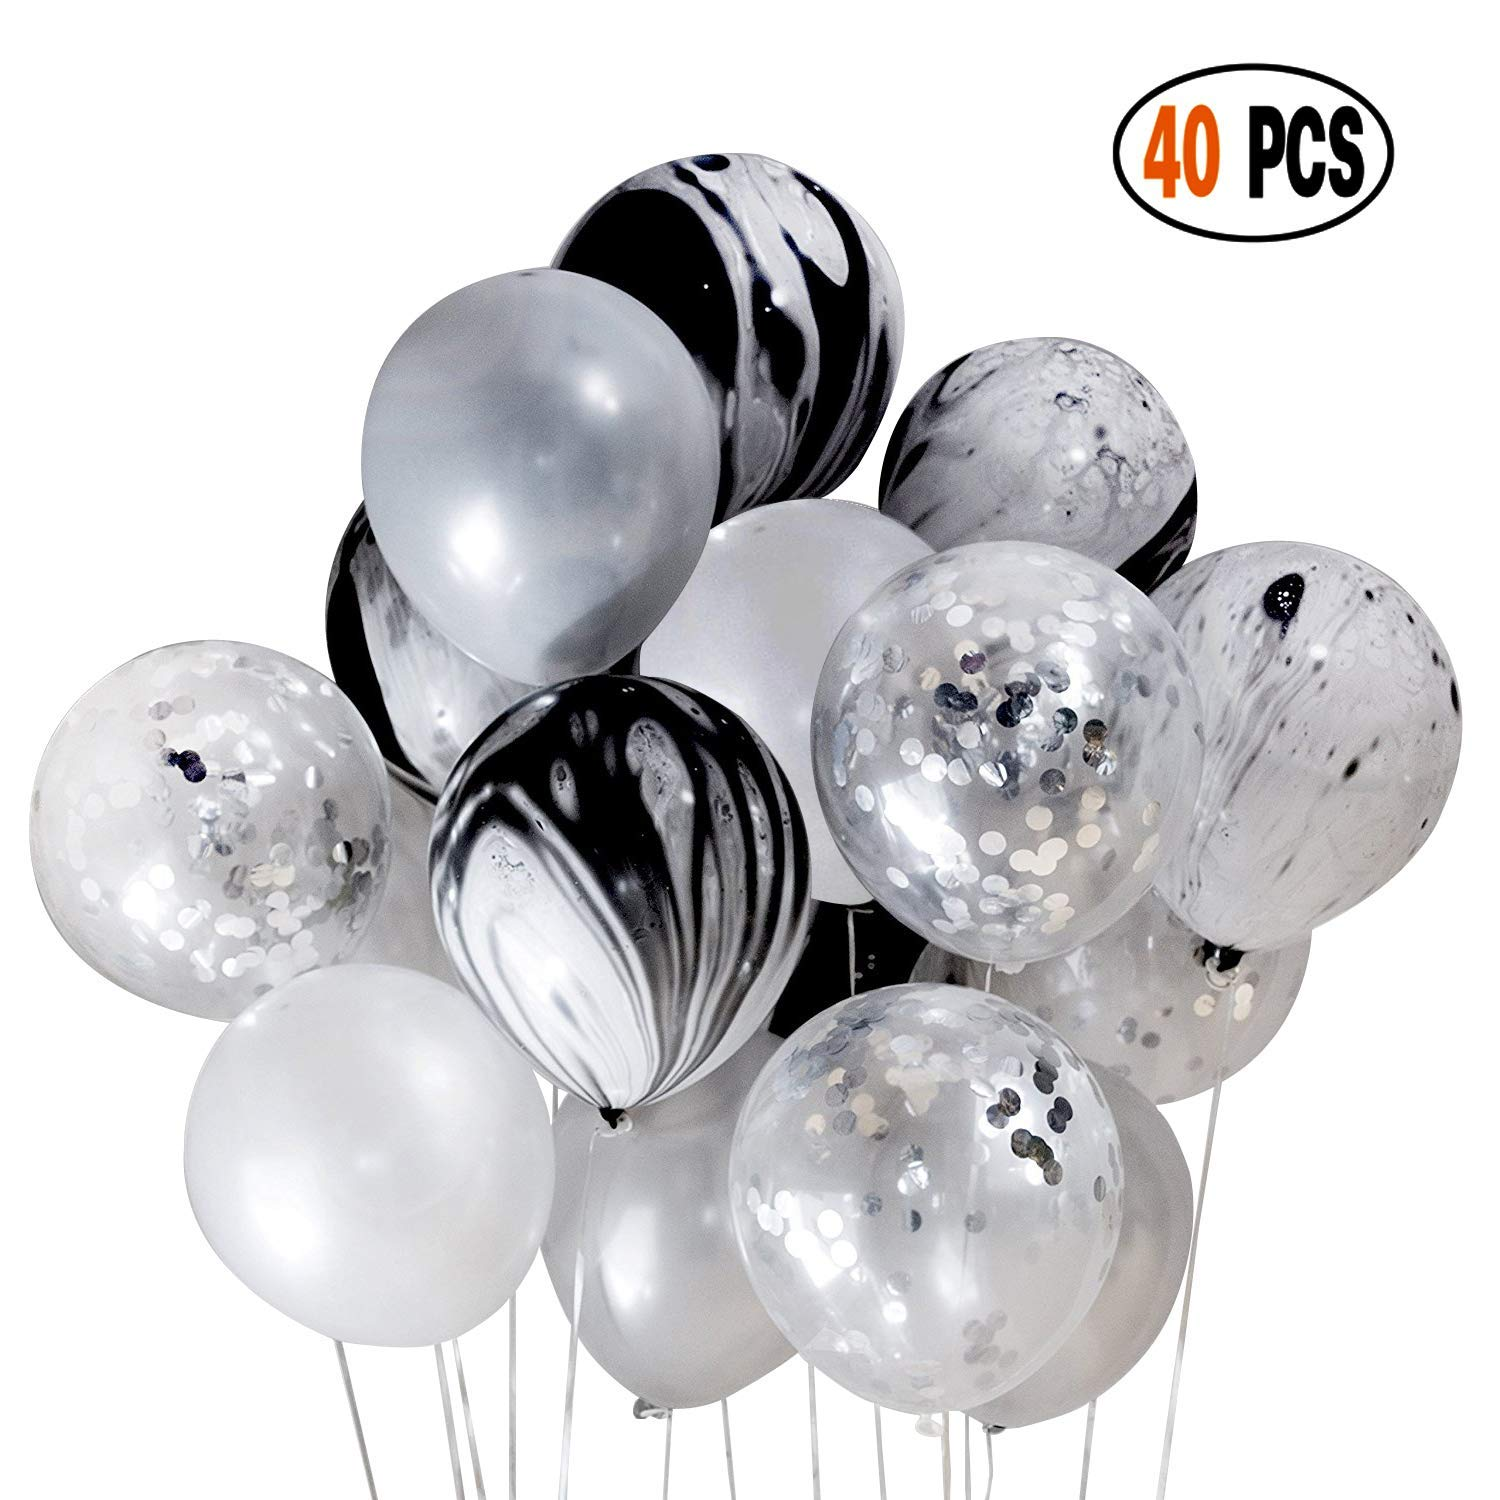 DIvine 40 Pcs Birthday Party Decorations Balloons Set, Silver Confetti and Blue Agate Marble Balloons Royal and Light Blue White Latex Balloons for Wedding Baby Showers Christmas Festival Ceremony